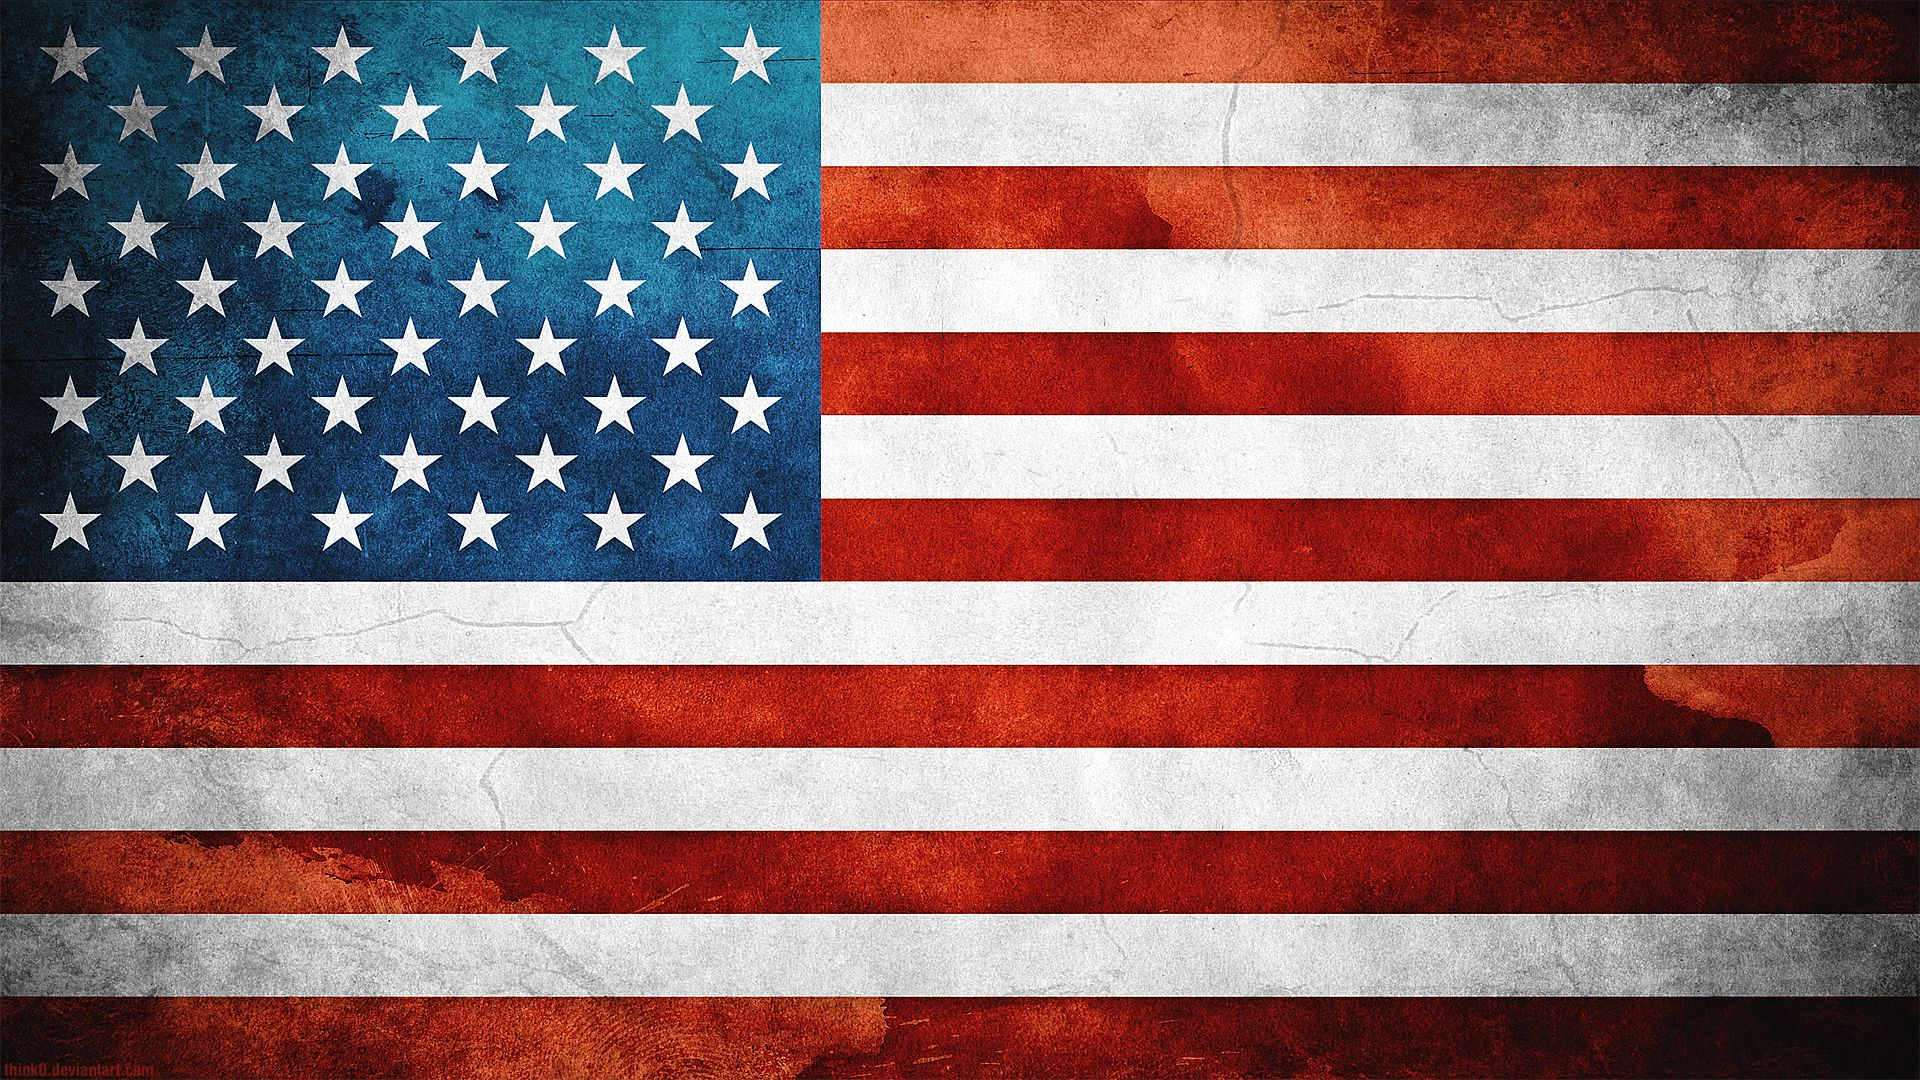 Proud To Be An American Always American Flag Wallpaper America Flag Wallpaper American Flag Background